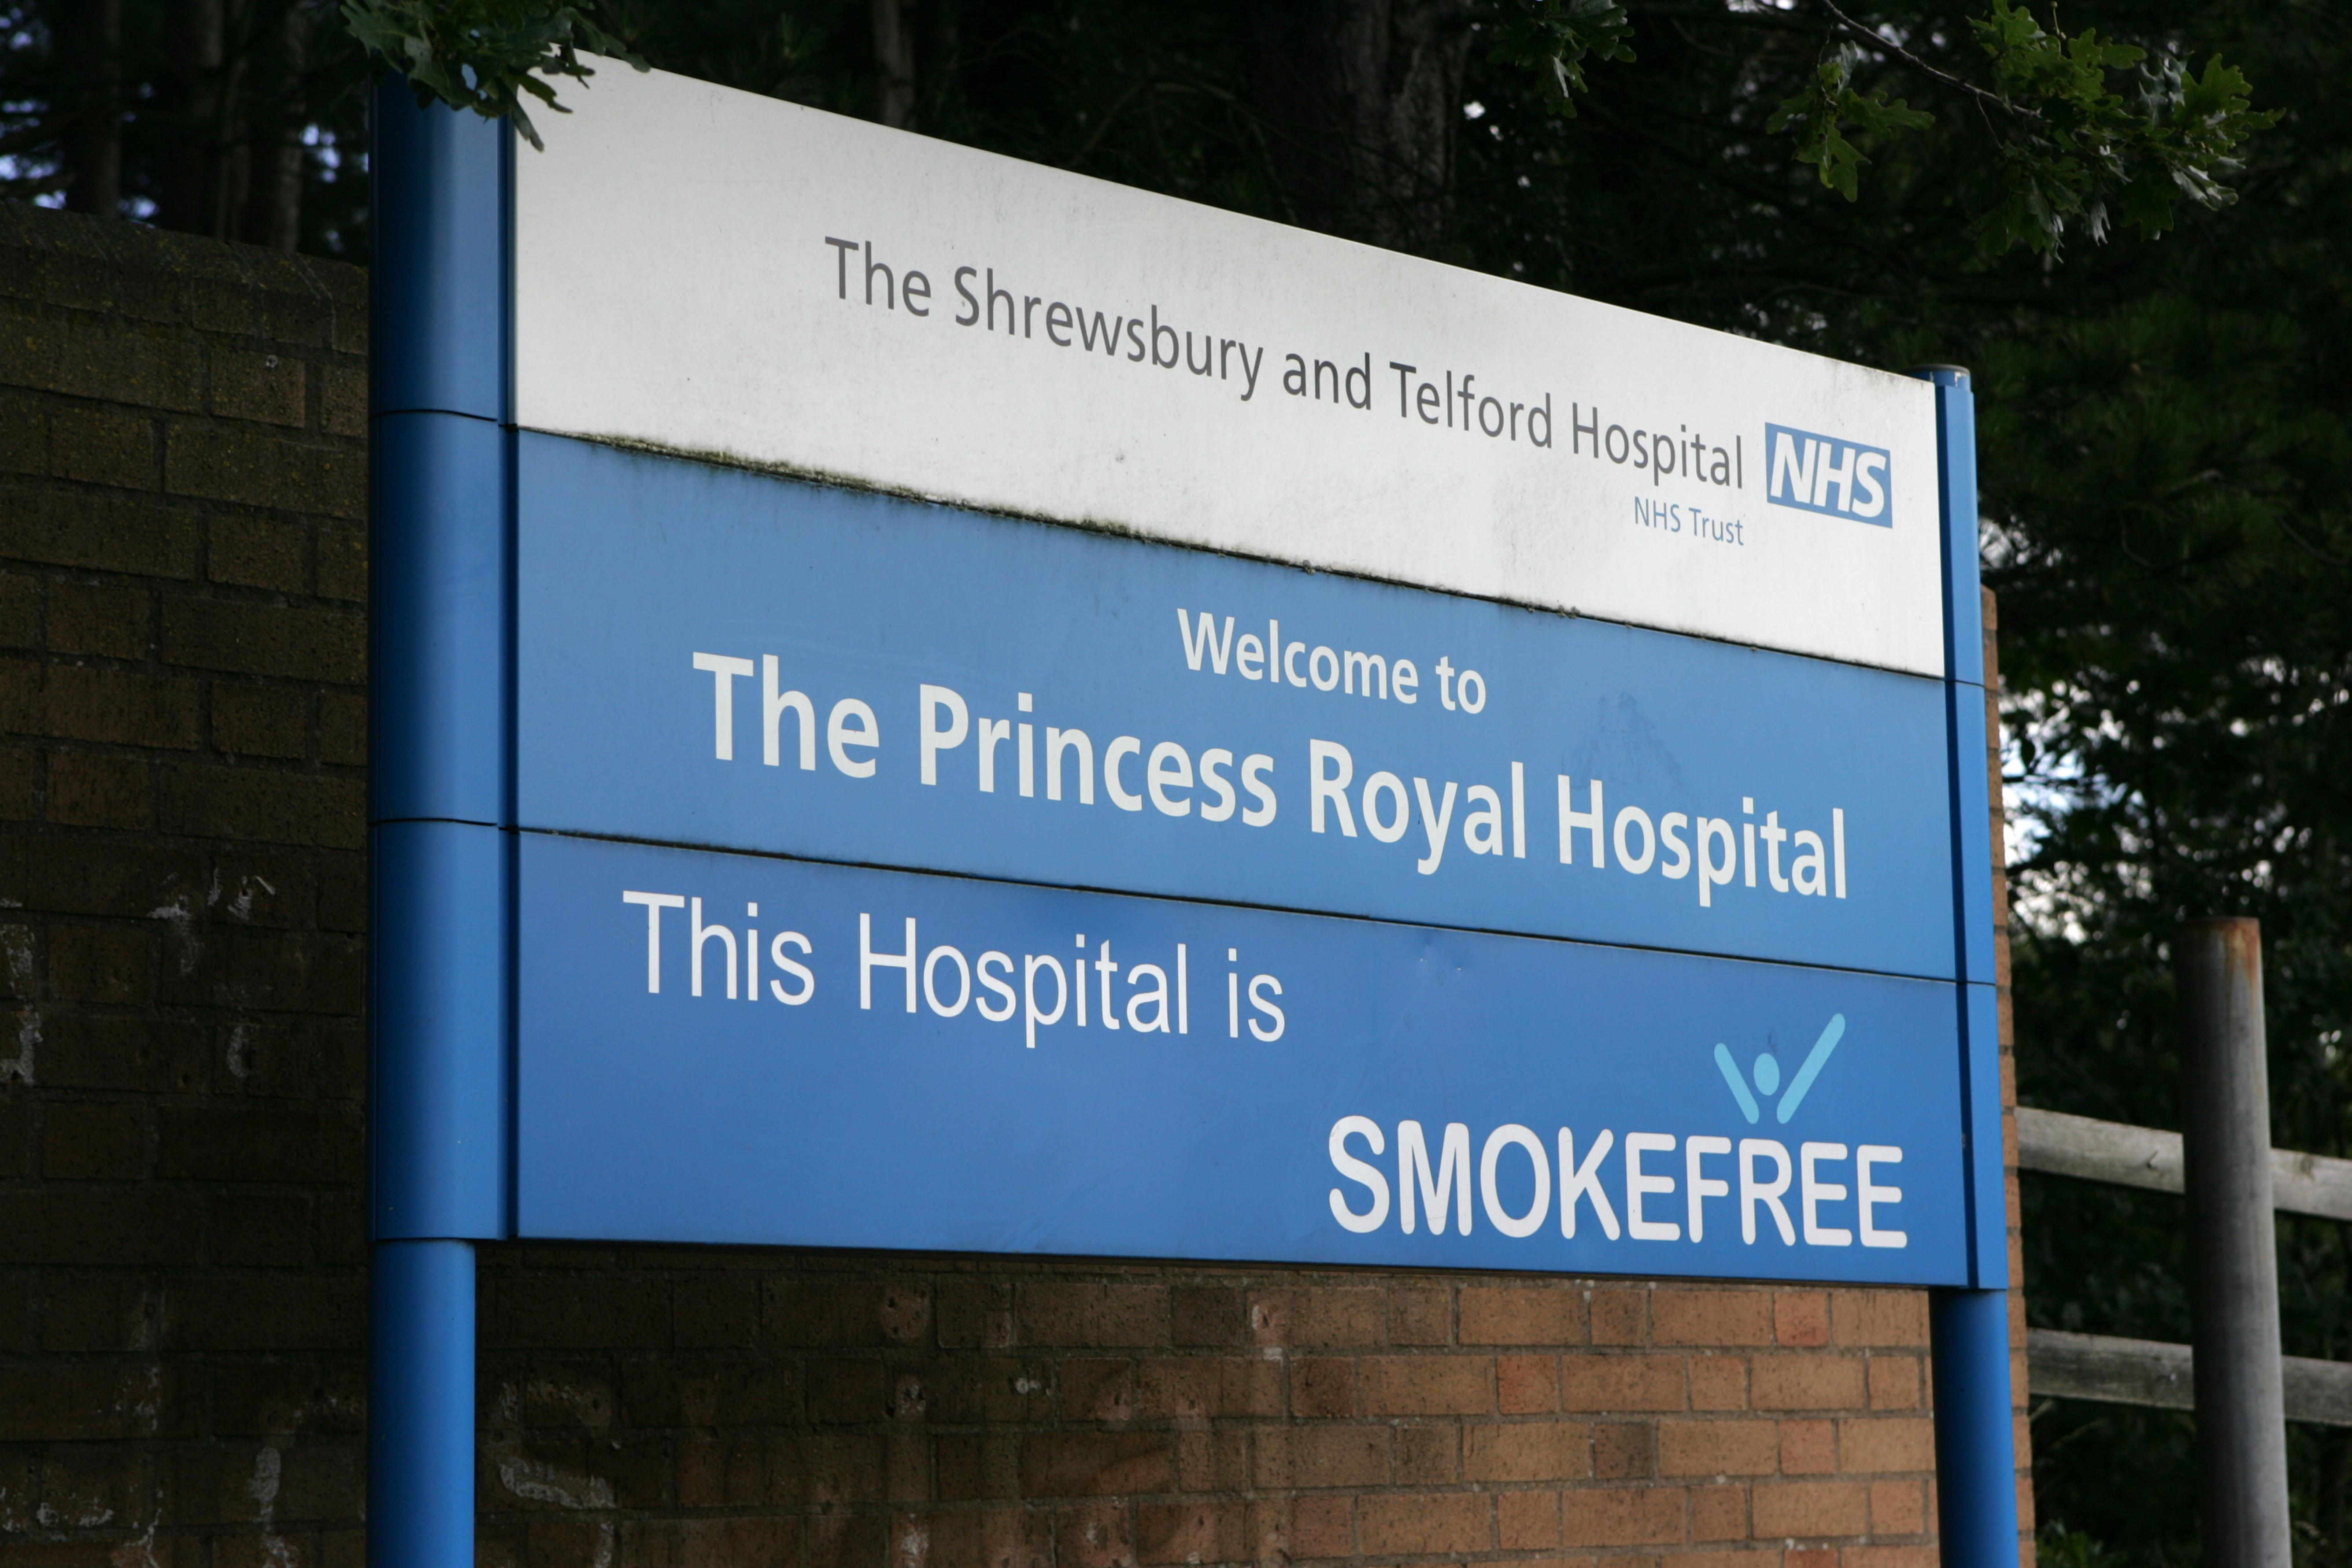 More than 100 Cases of mother and baby deaths and injuries will be reviewed at a single maternity unit